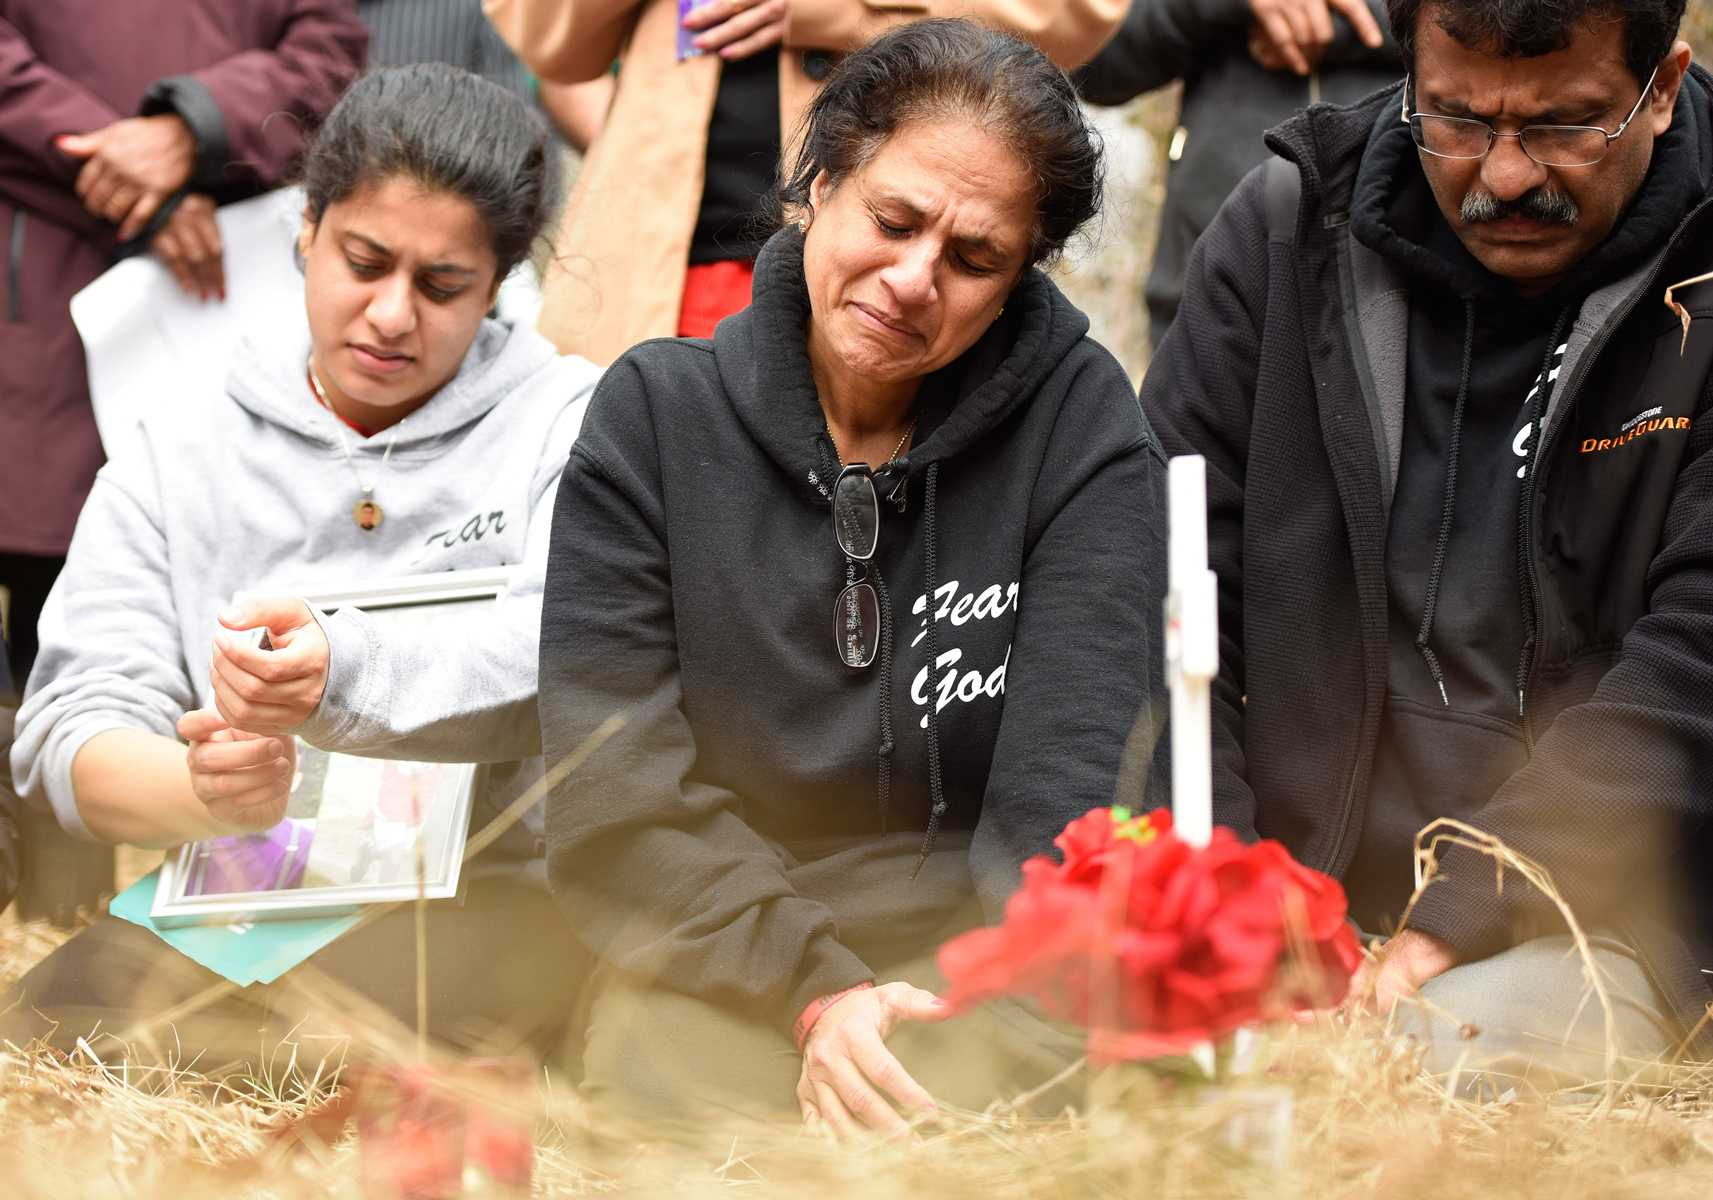 Pravin Varughese's older sister Priya, his mother Lovely, and his father Mathew kneel during a memorial ceremony on Saturday, Feb. 13, 2017, in the woods bordering Illinois Route 13, where police say he died of hypothermia about three years ago. (Luke Nozicka | @lukenozicka)